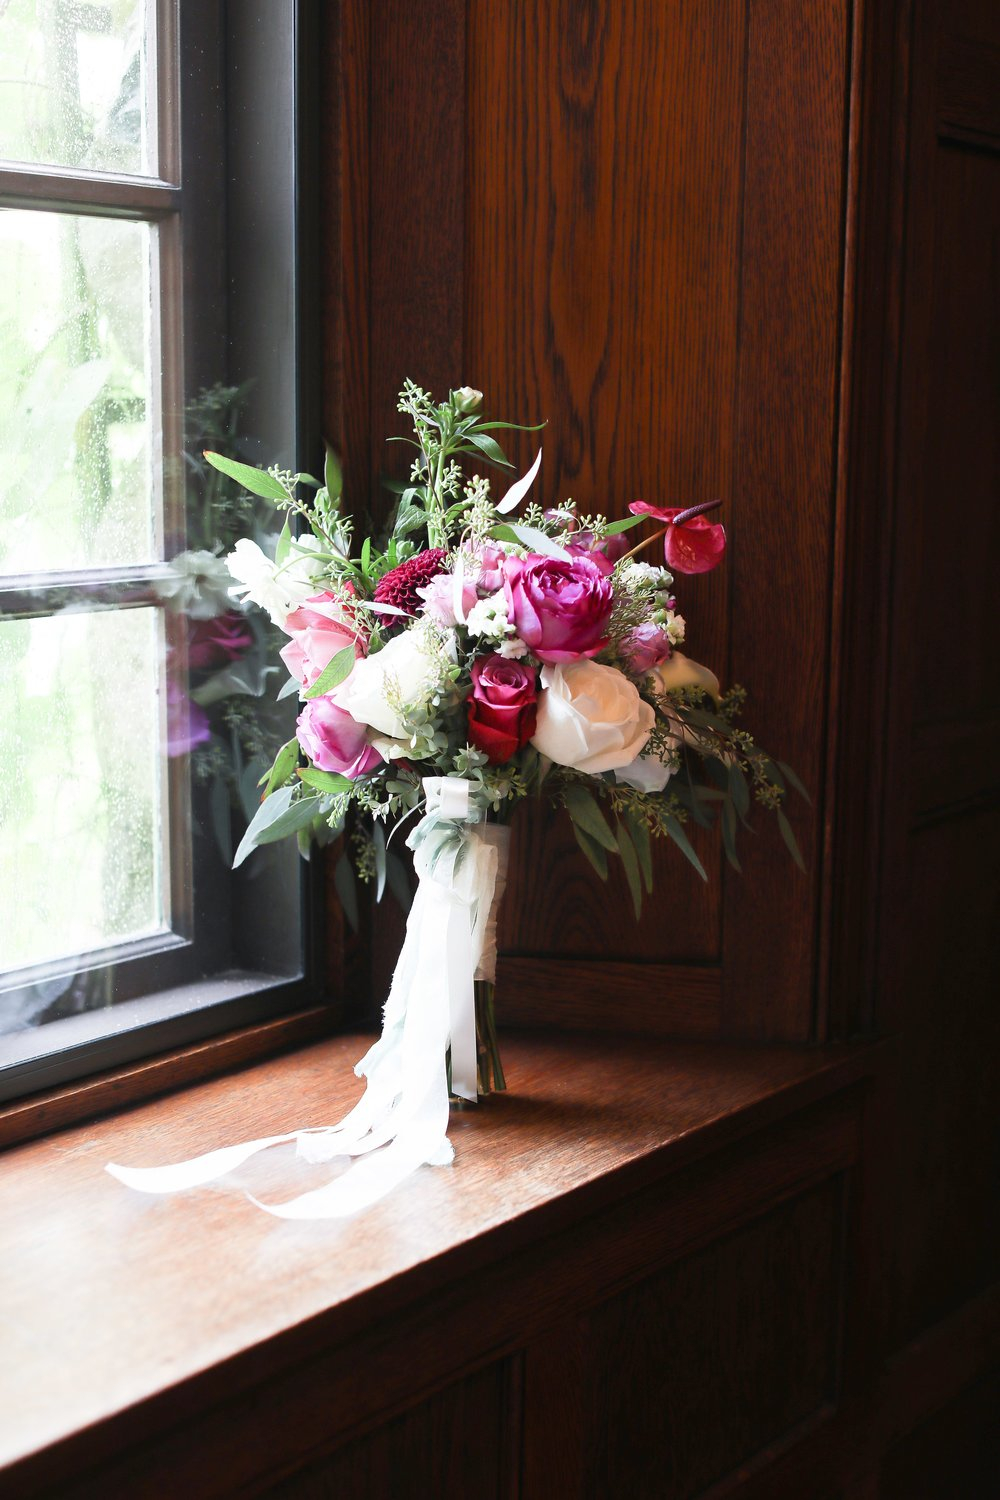 Garden roses and tropicals